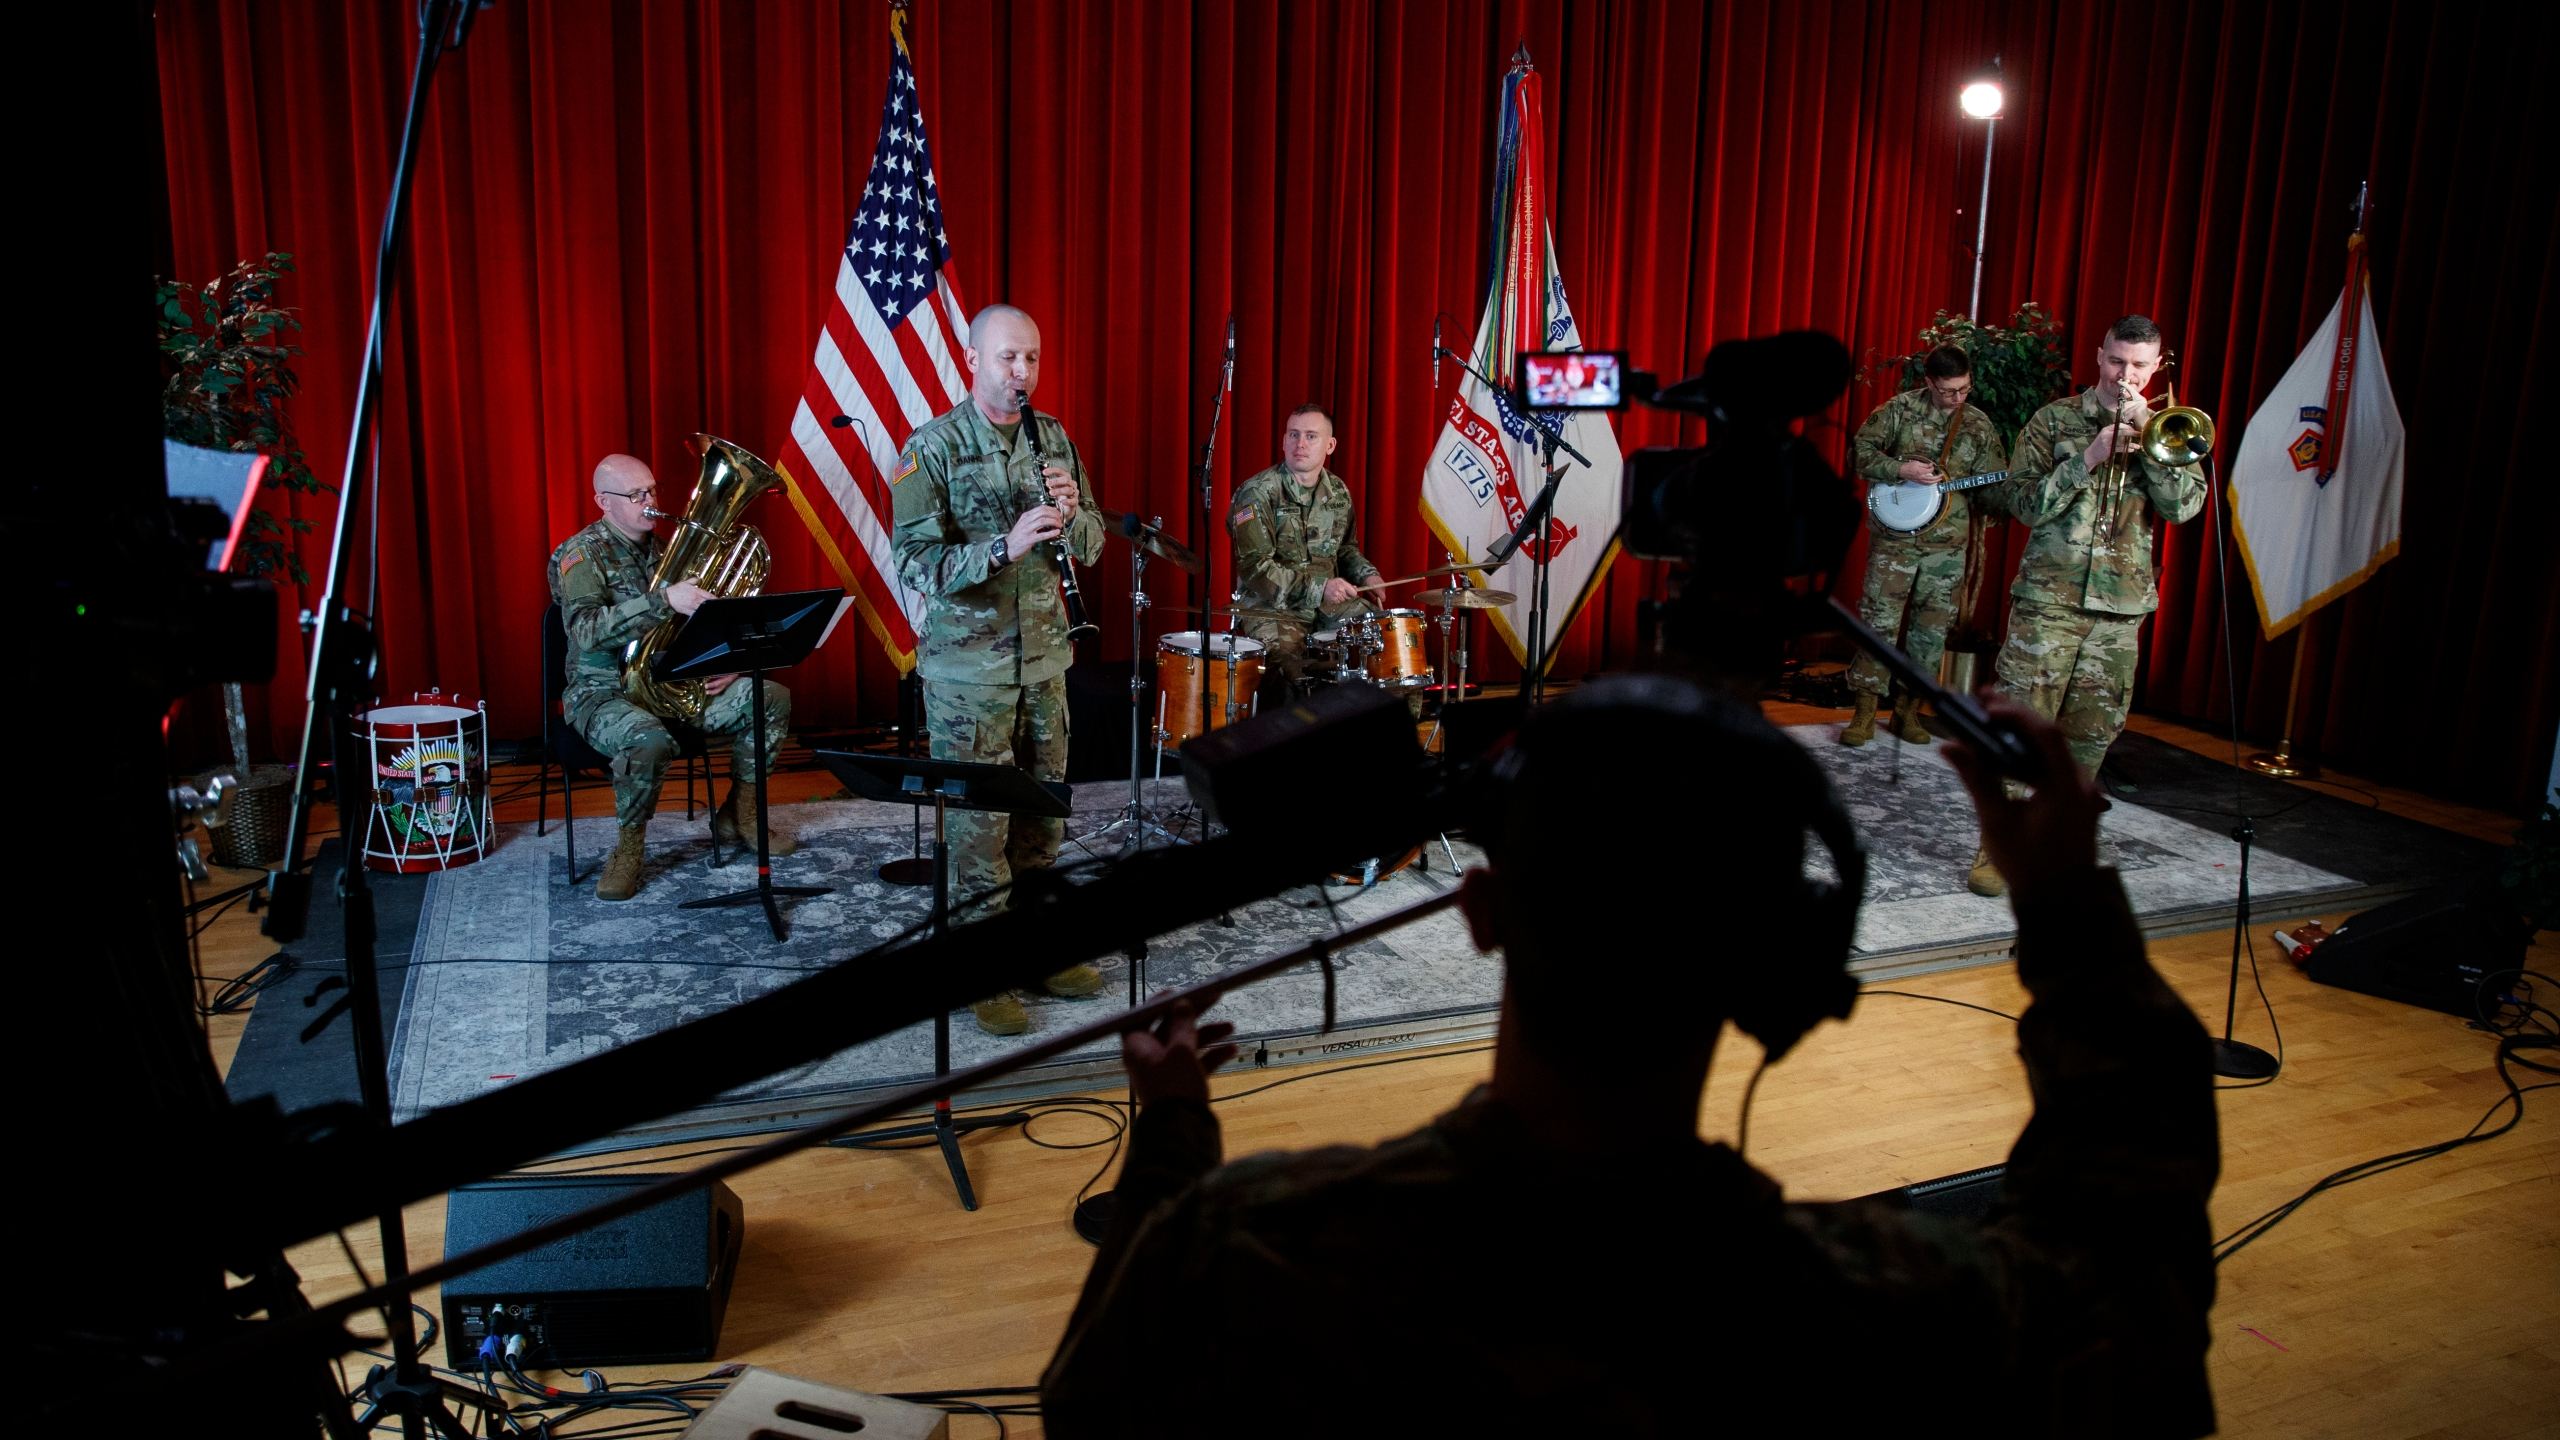 "U.S. Army Field Band members from left, Chief Warrant Officer 2 Kevin Pick, on the tuba, Master Sgt. Bradford Danho, on the clarinet, Staff Sgt. Andrew Emerich, on the drums, Sgt. 1st Class Jonathan Epley, on the banjo and Staff Sgt. Kyle Johnson, on the trombone, are spaced to allow for social distancing as they play during the rehearsal of their daily ""We Stand Ready"" virtual concert series at Fort George G. Meade in Fort Meade, Md., Wednesday, March 25, 2020. The Army Field Band's mission is to bring the military's story to the American people. And they're not letting the coronavirus get in the way. (AP Photo/Carolyn Kaster)"